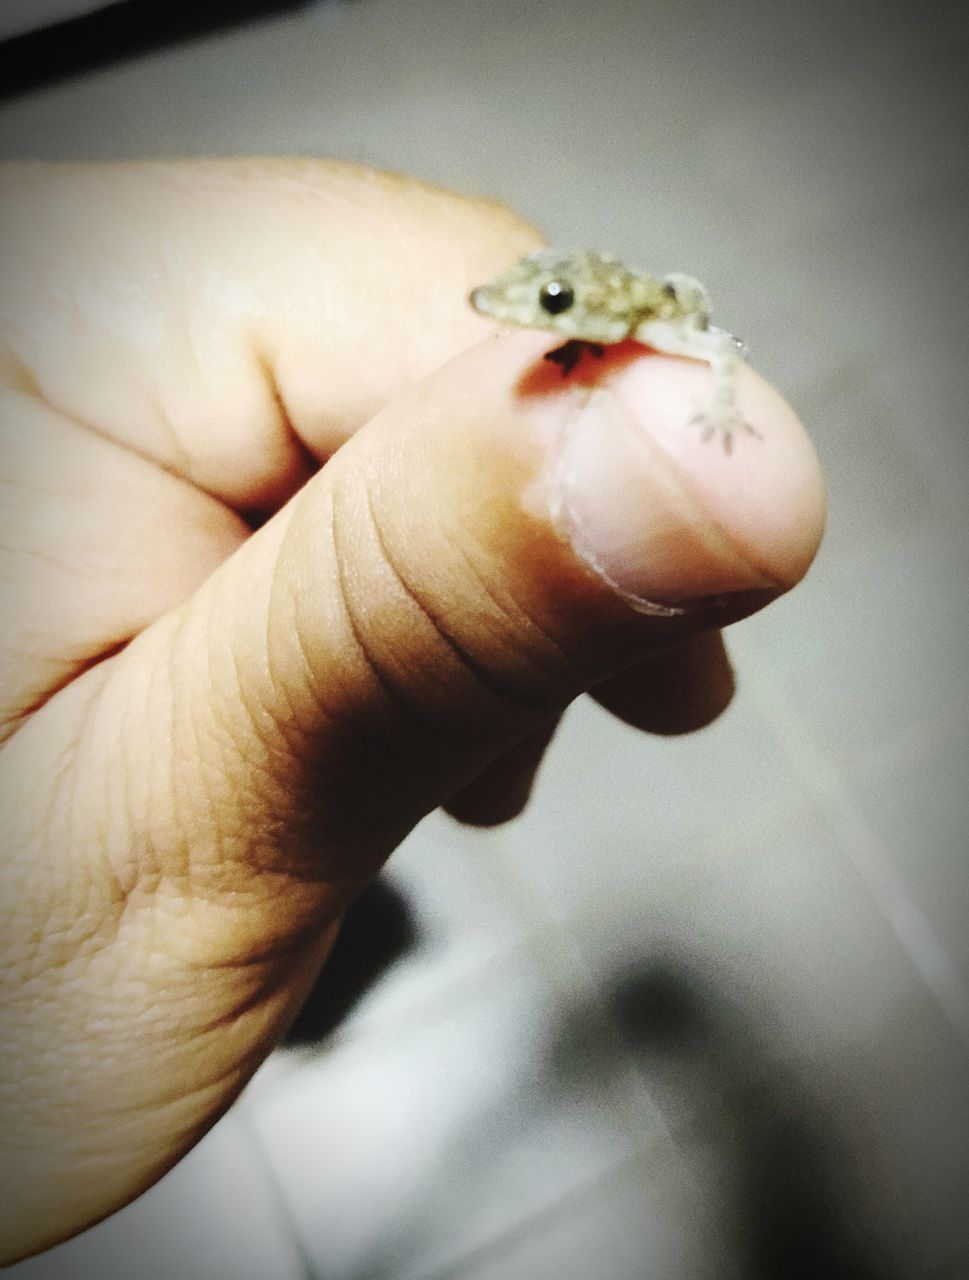 CLOSE-UP OF PERSON HAND HOLDING SMALL